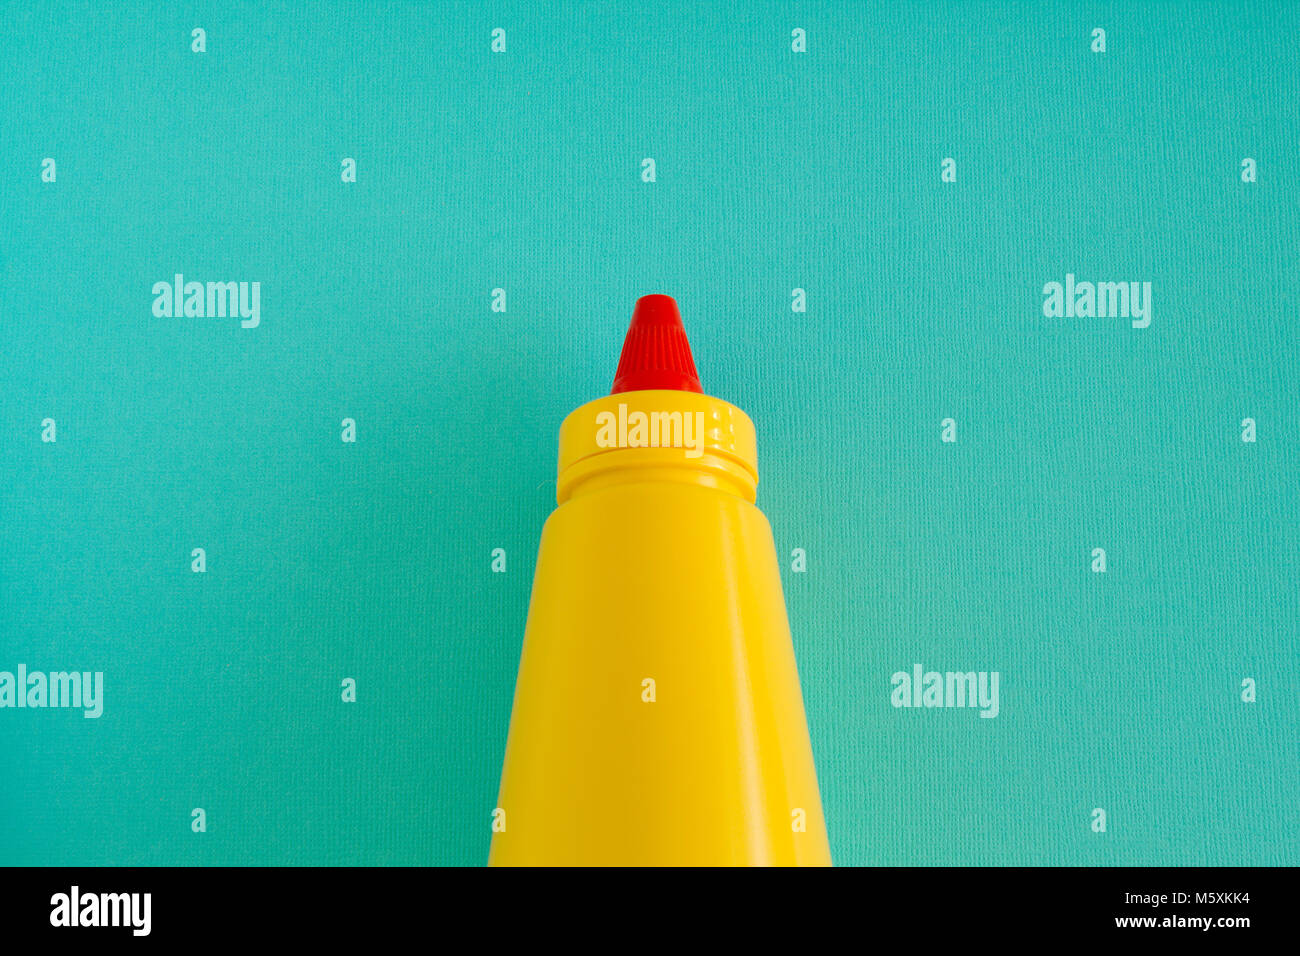 A bright yellow squirting mustard or condiment bottle with bright red twisting lid. Centre aligned on an aqua background. - Stock Image